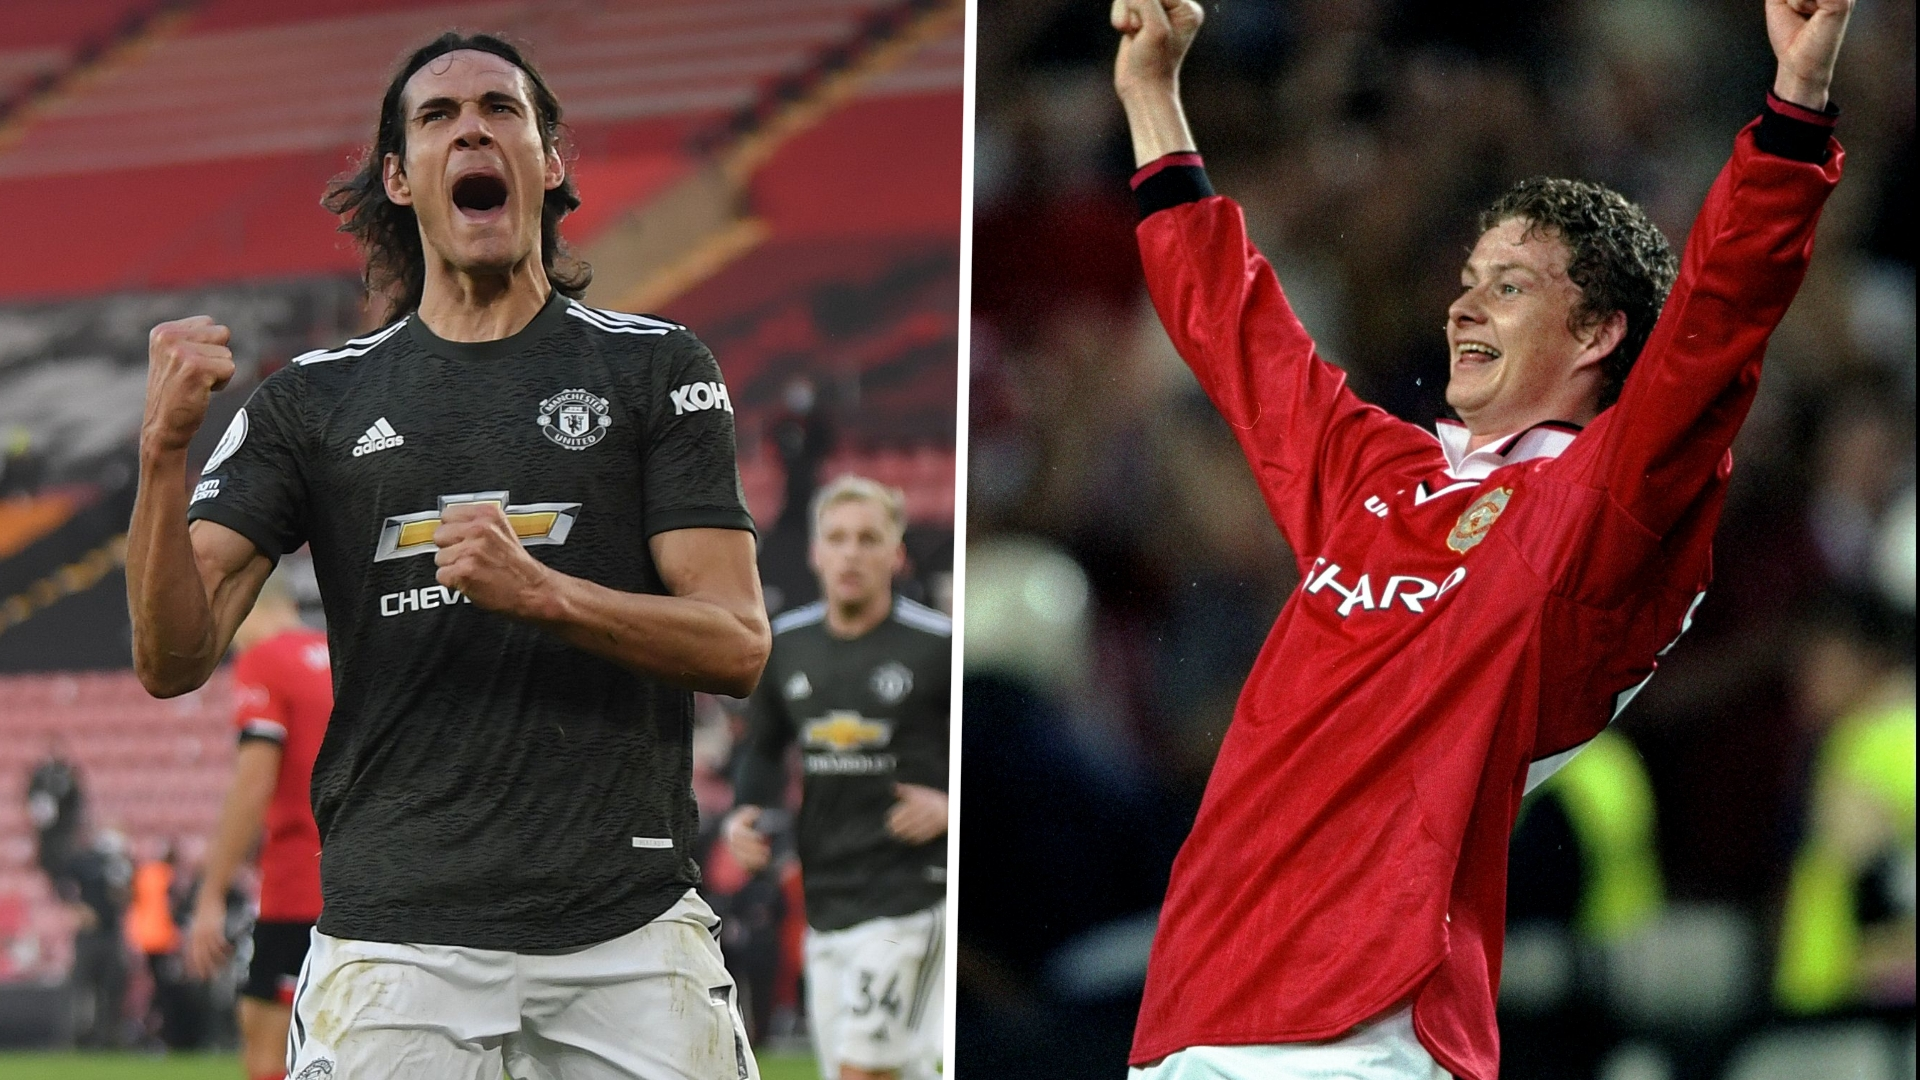 'We're not the same, I always had studs on!' – Solskjaer pokes fun at Manchester United's new super sub Cavani